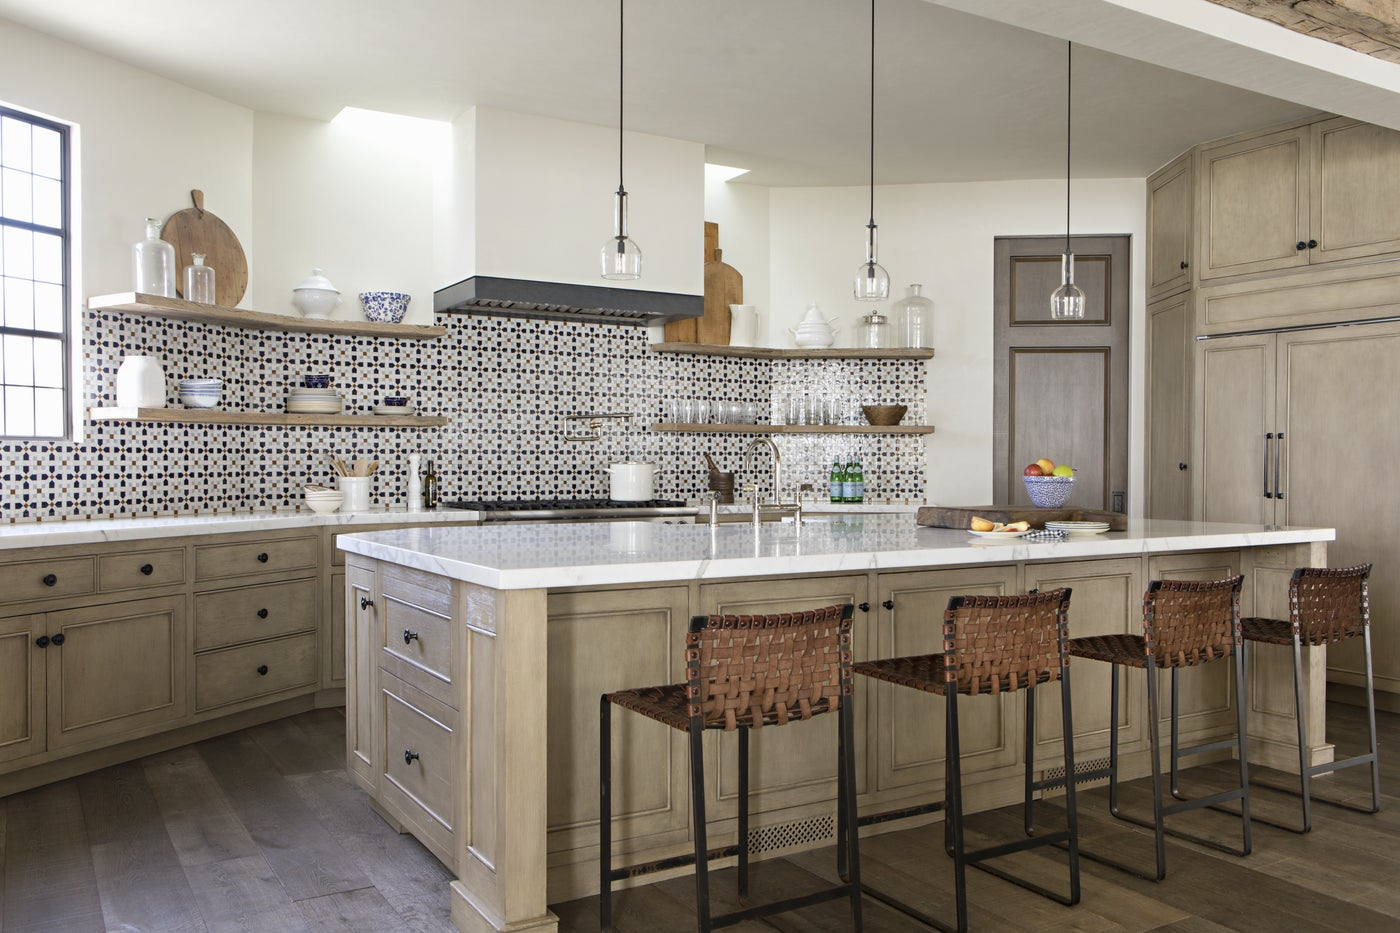 This kitchen includes Moroccan mosaic tiles and a plaster hood with steel band